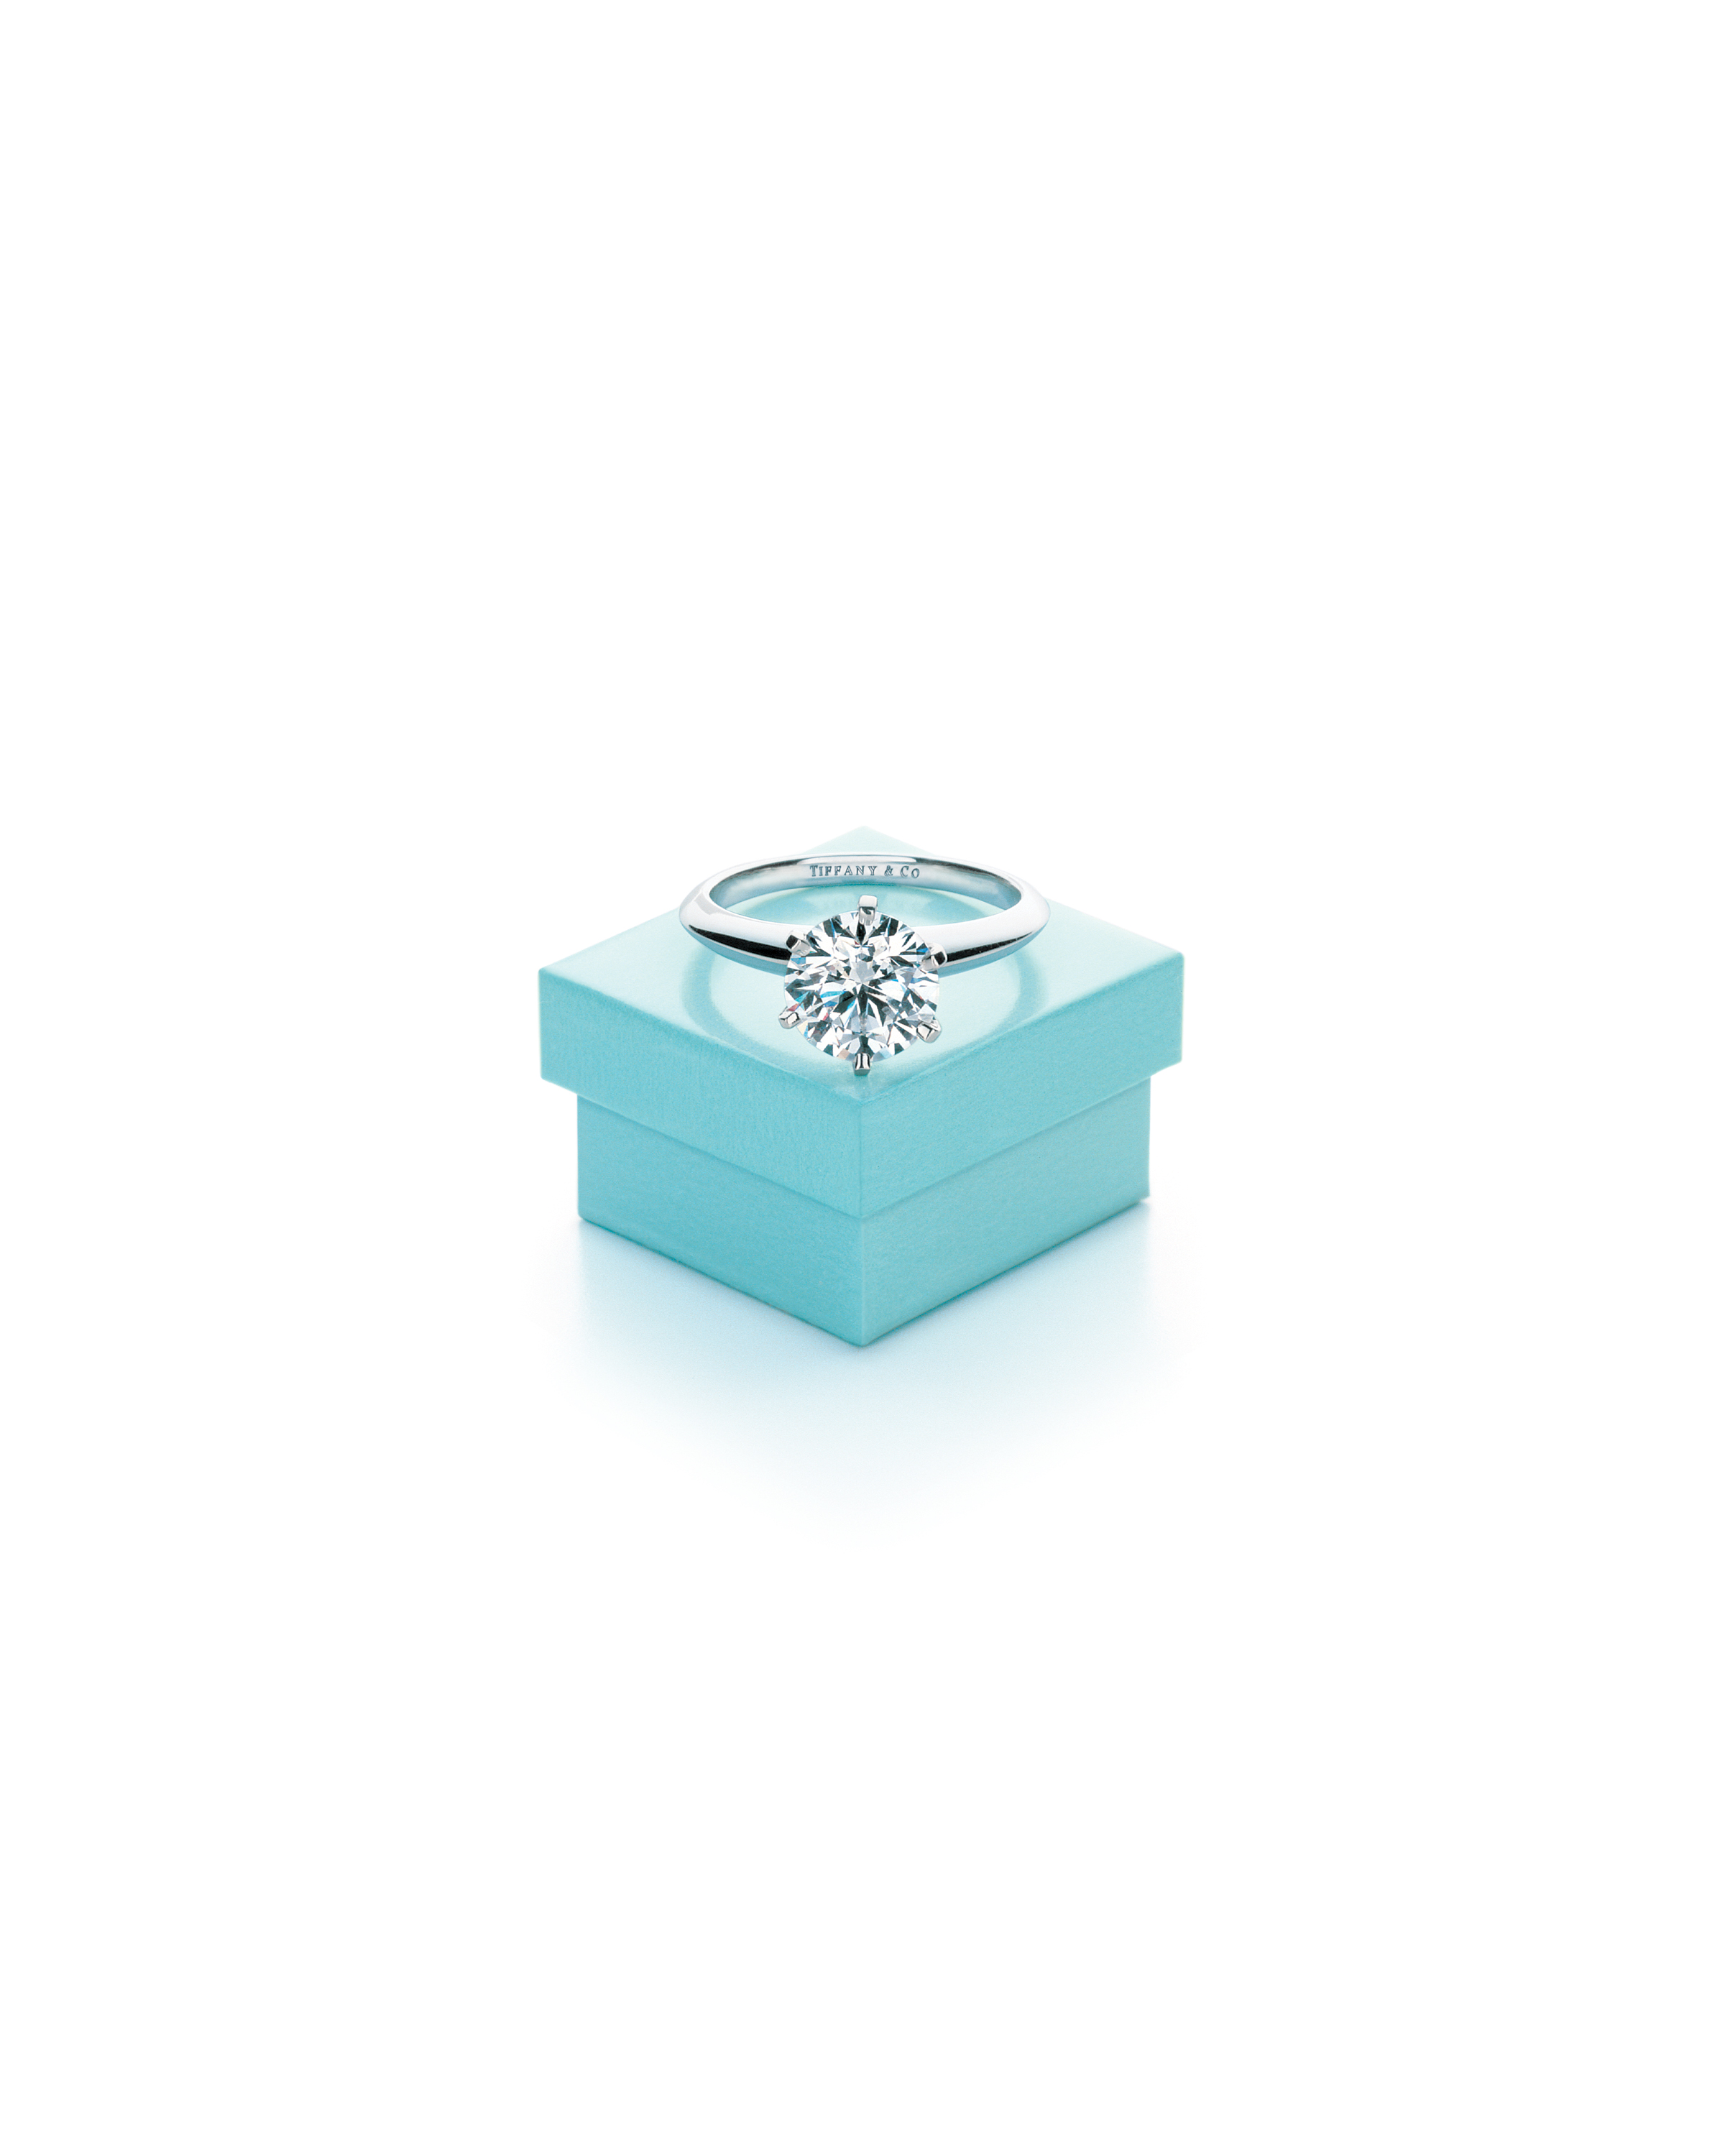 The Tiffany® Setting and Tiffany Blue Box®